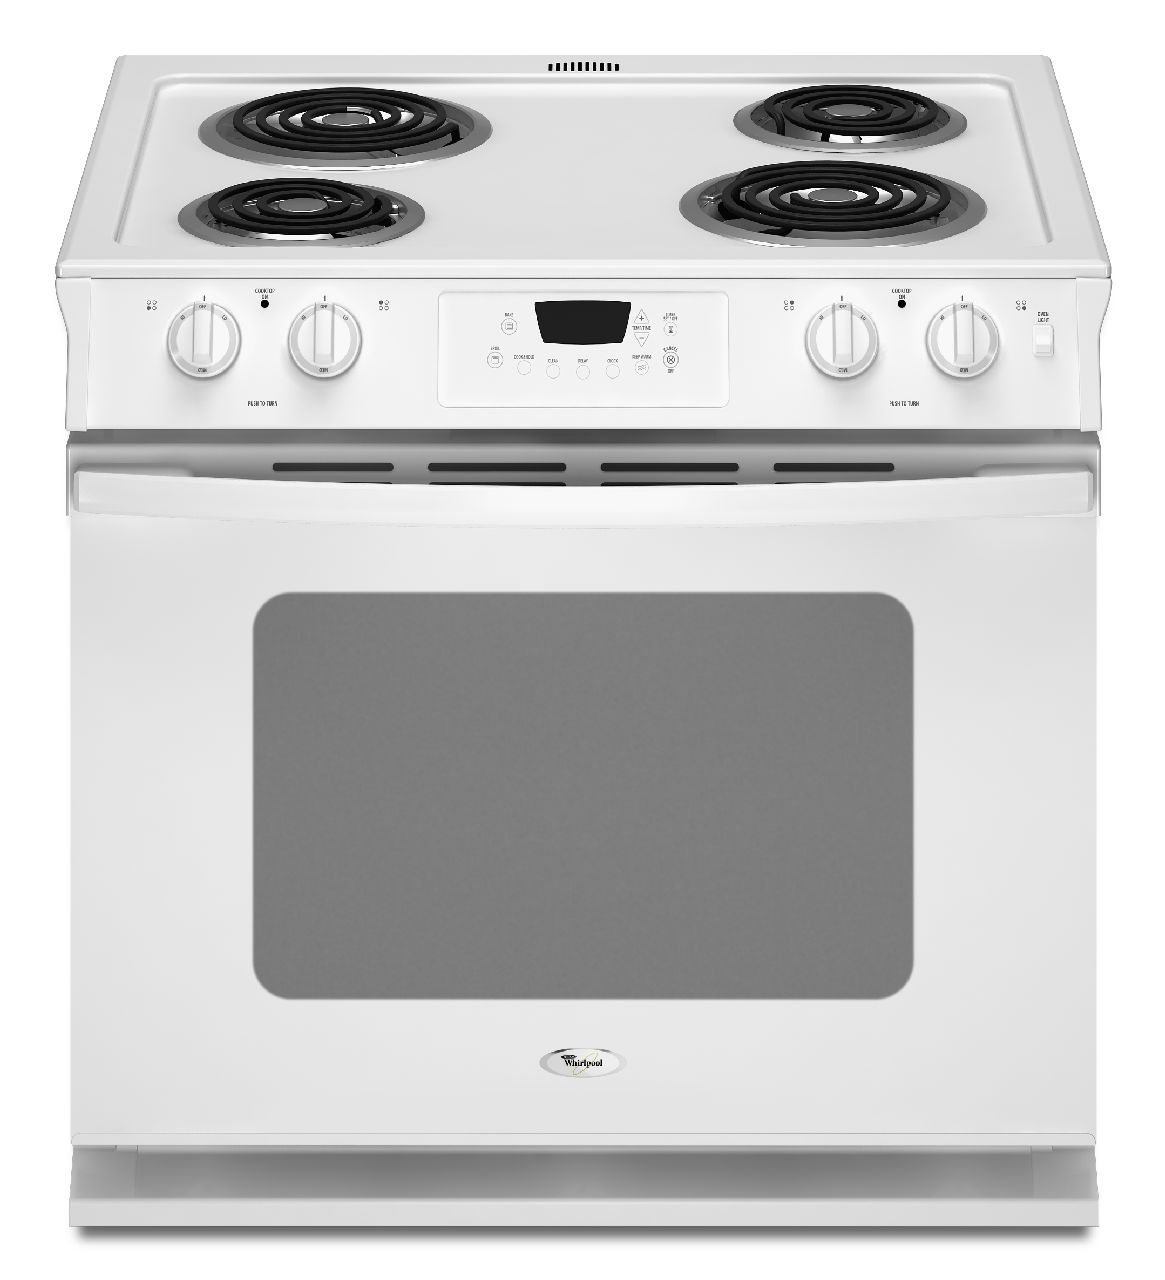 Whirlpool Range Stove Oven Model Wde150lvq01 Parts